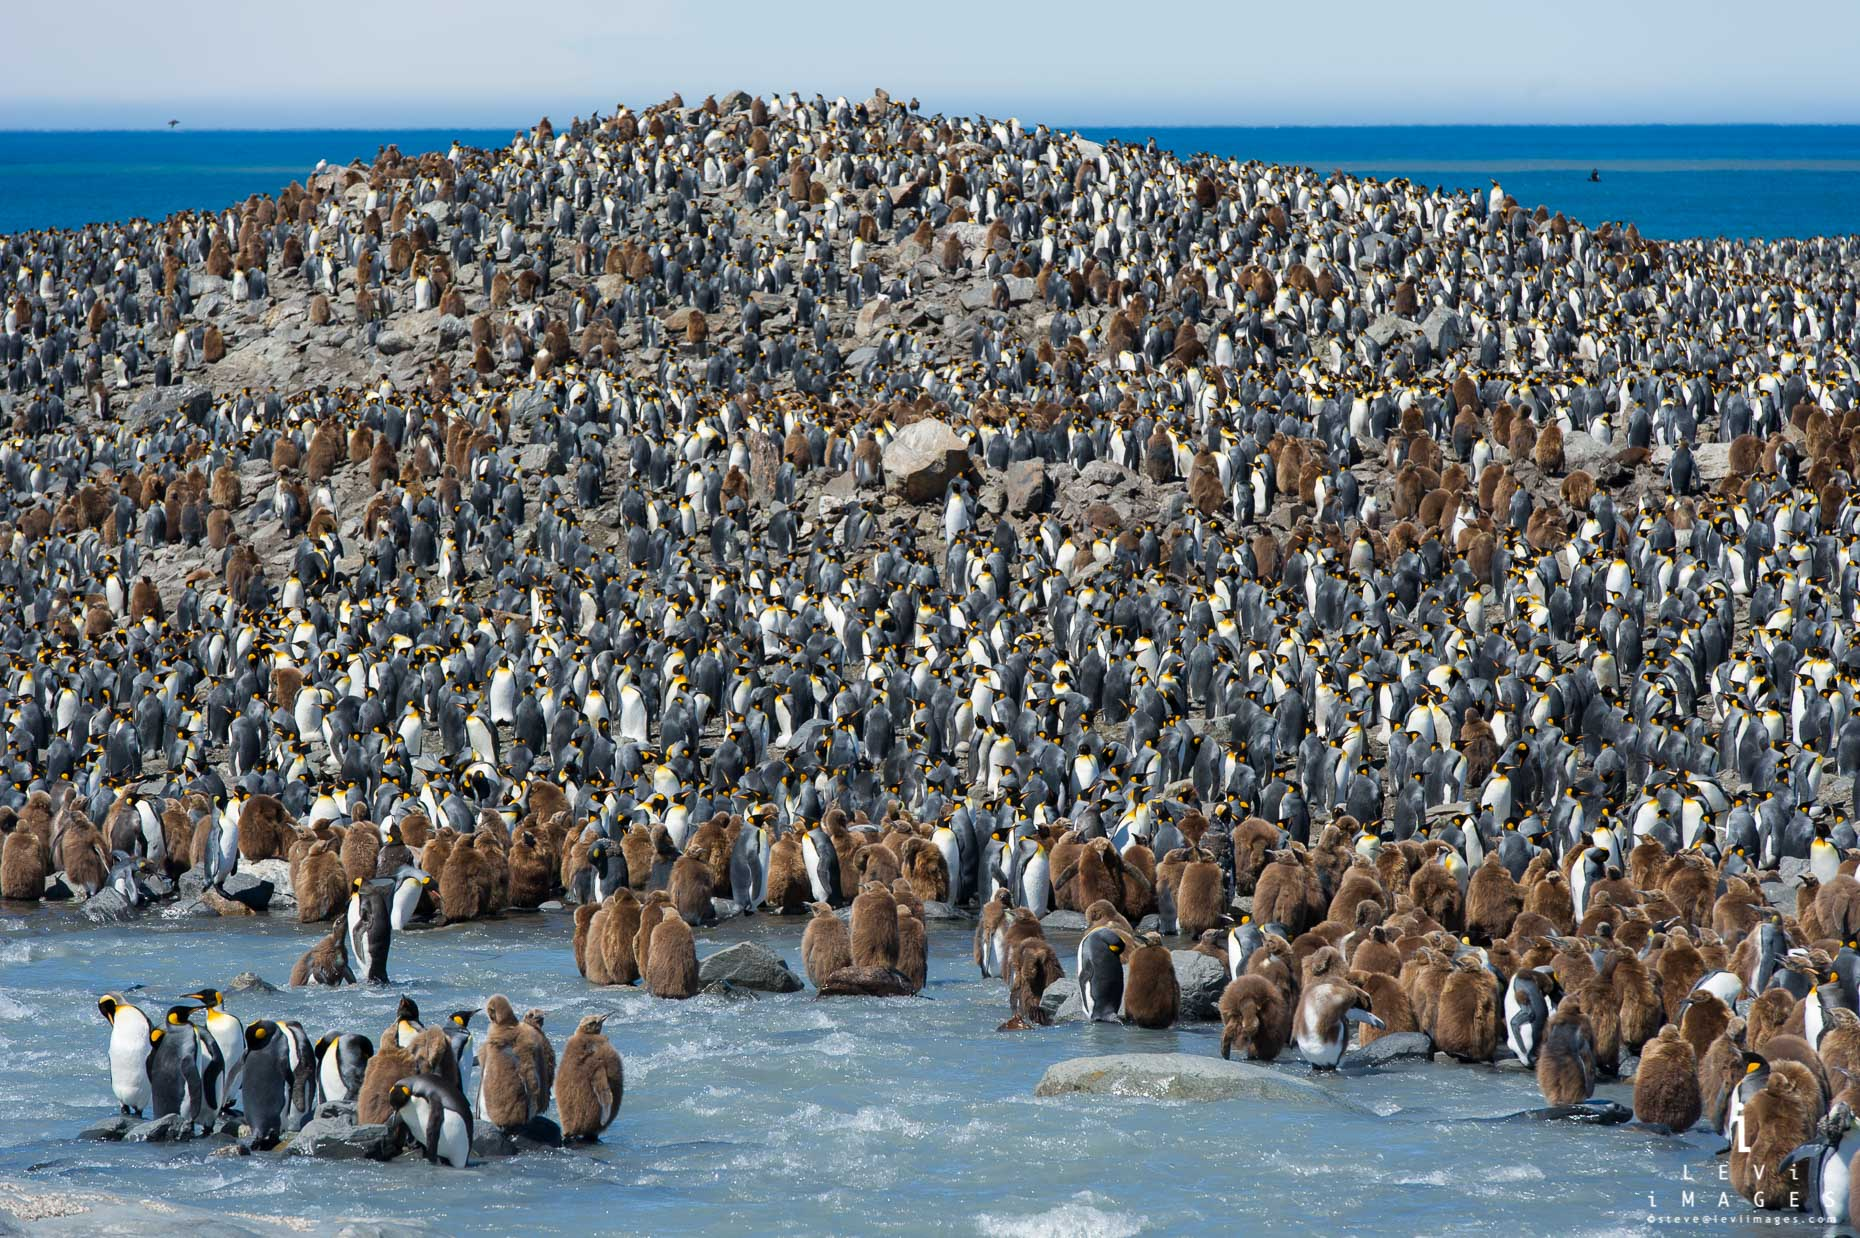 King penguin (Aptenodytes patagonicus) colony. Saint Andrews Bay, South Georgia Island